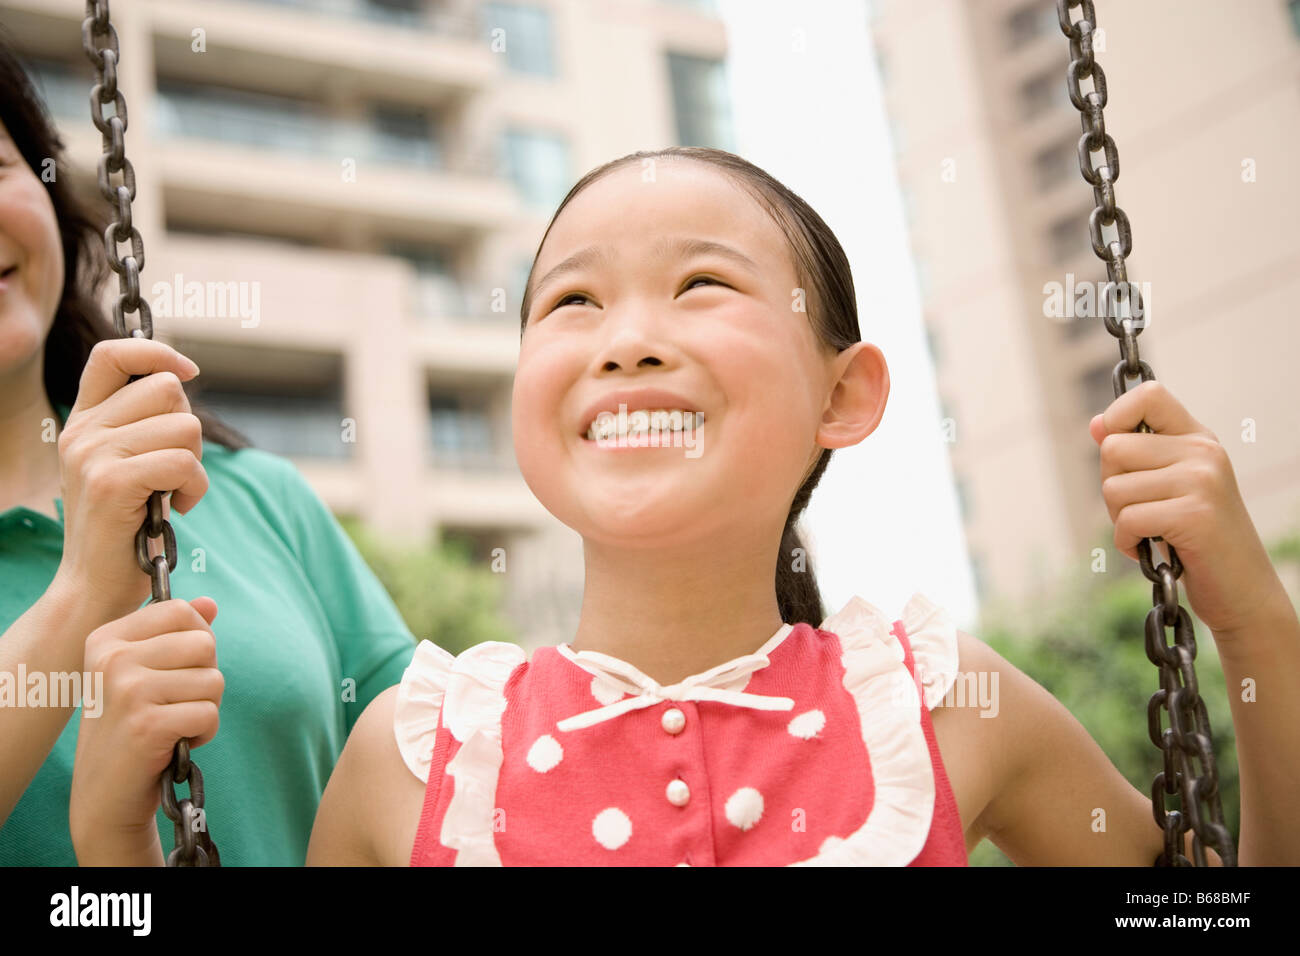 Close-up of a girl smiling on a swing with her mother behind her - Stock Image